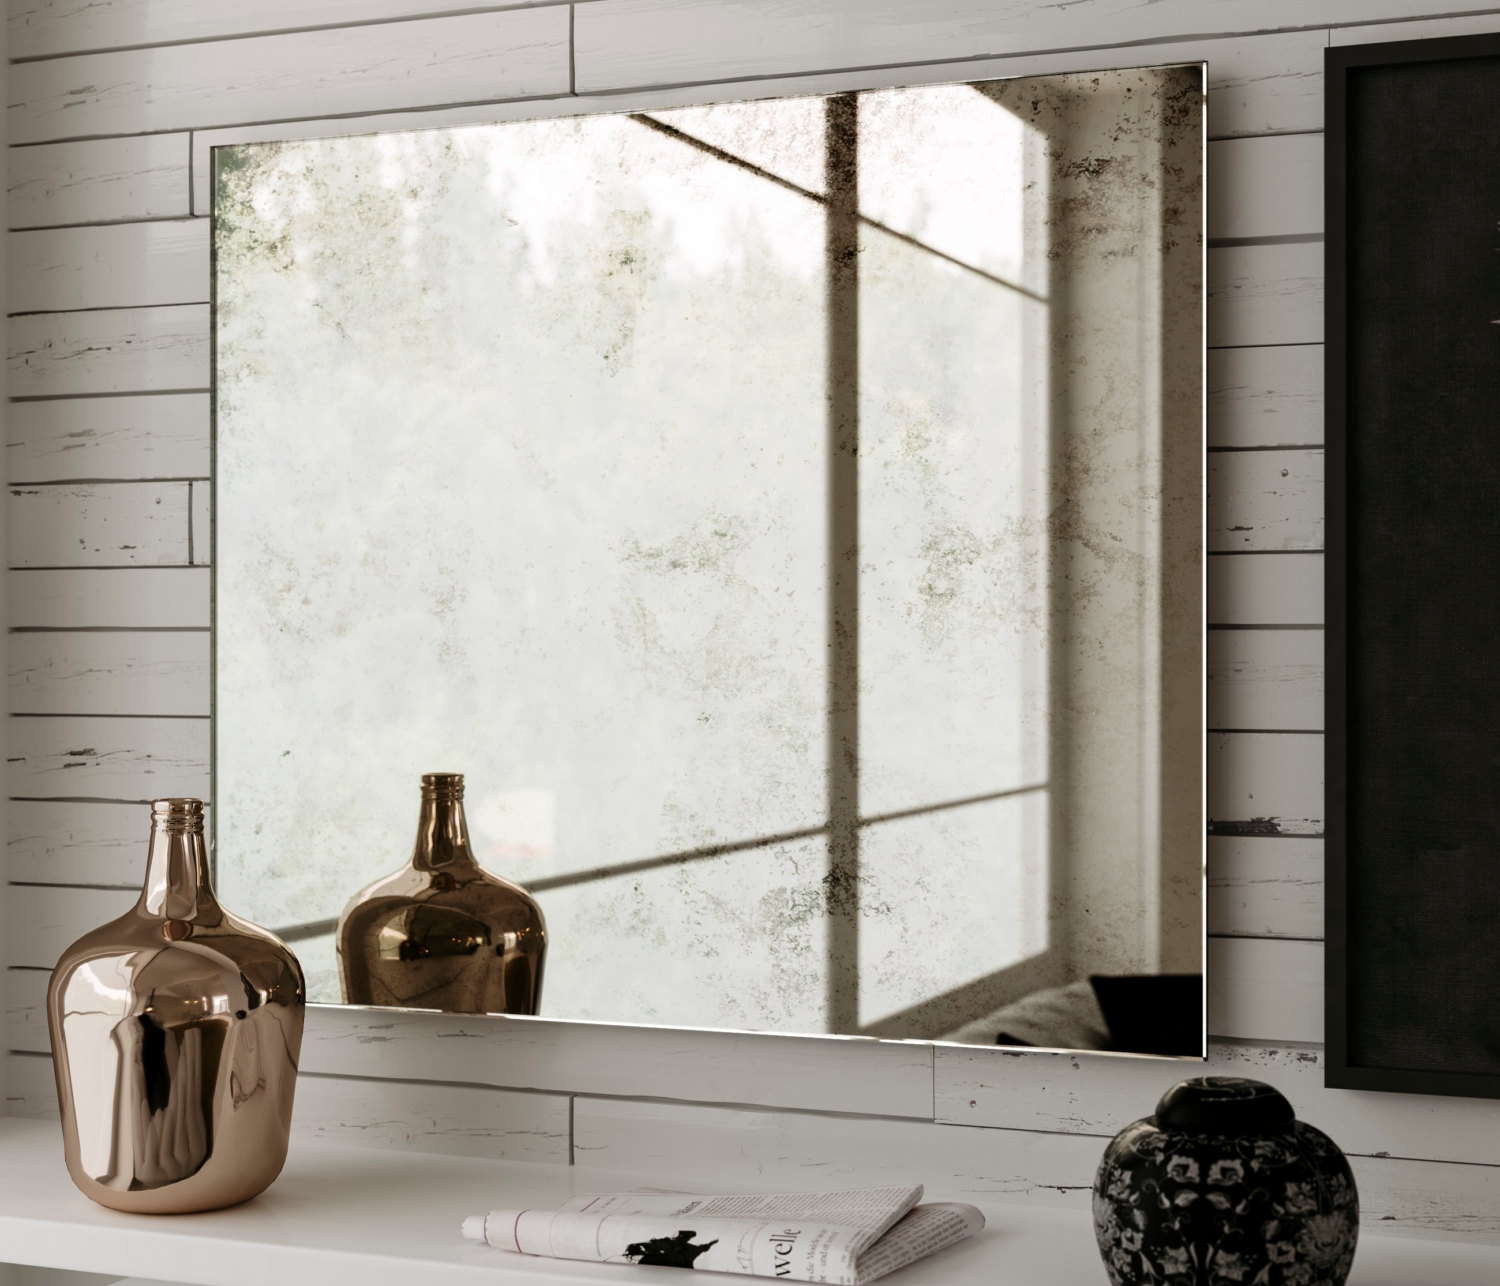 Marvelous Ideas Large Frameless Wall Mirrors Shining Modern Silver Regarding Frameless Large Mirrors (Image 10 of 15)